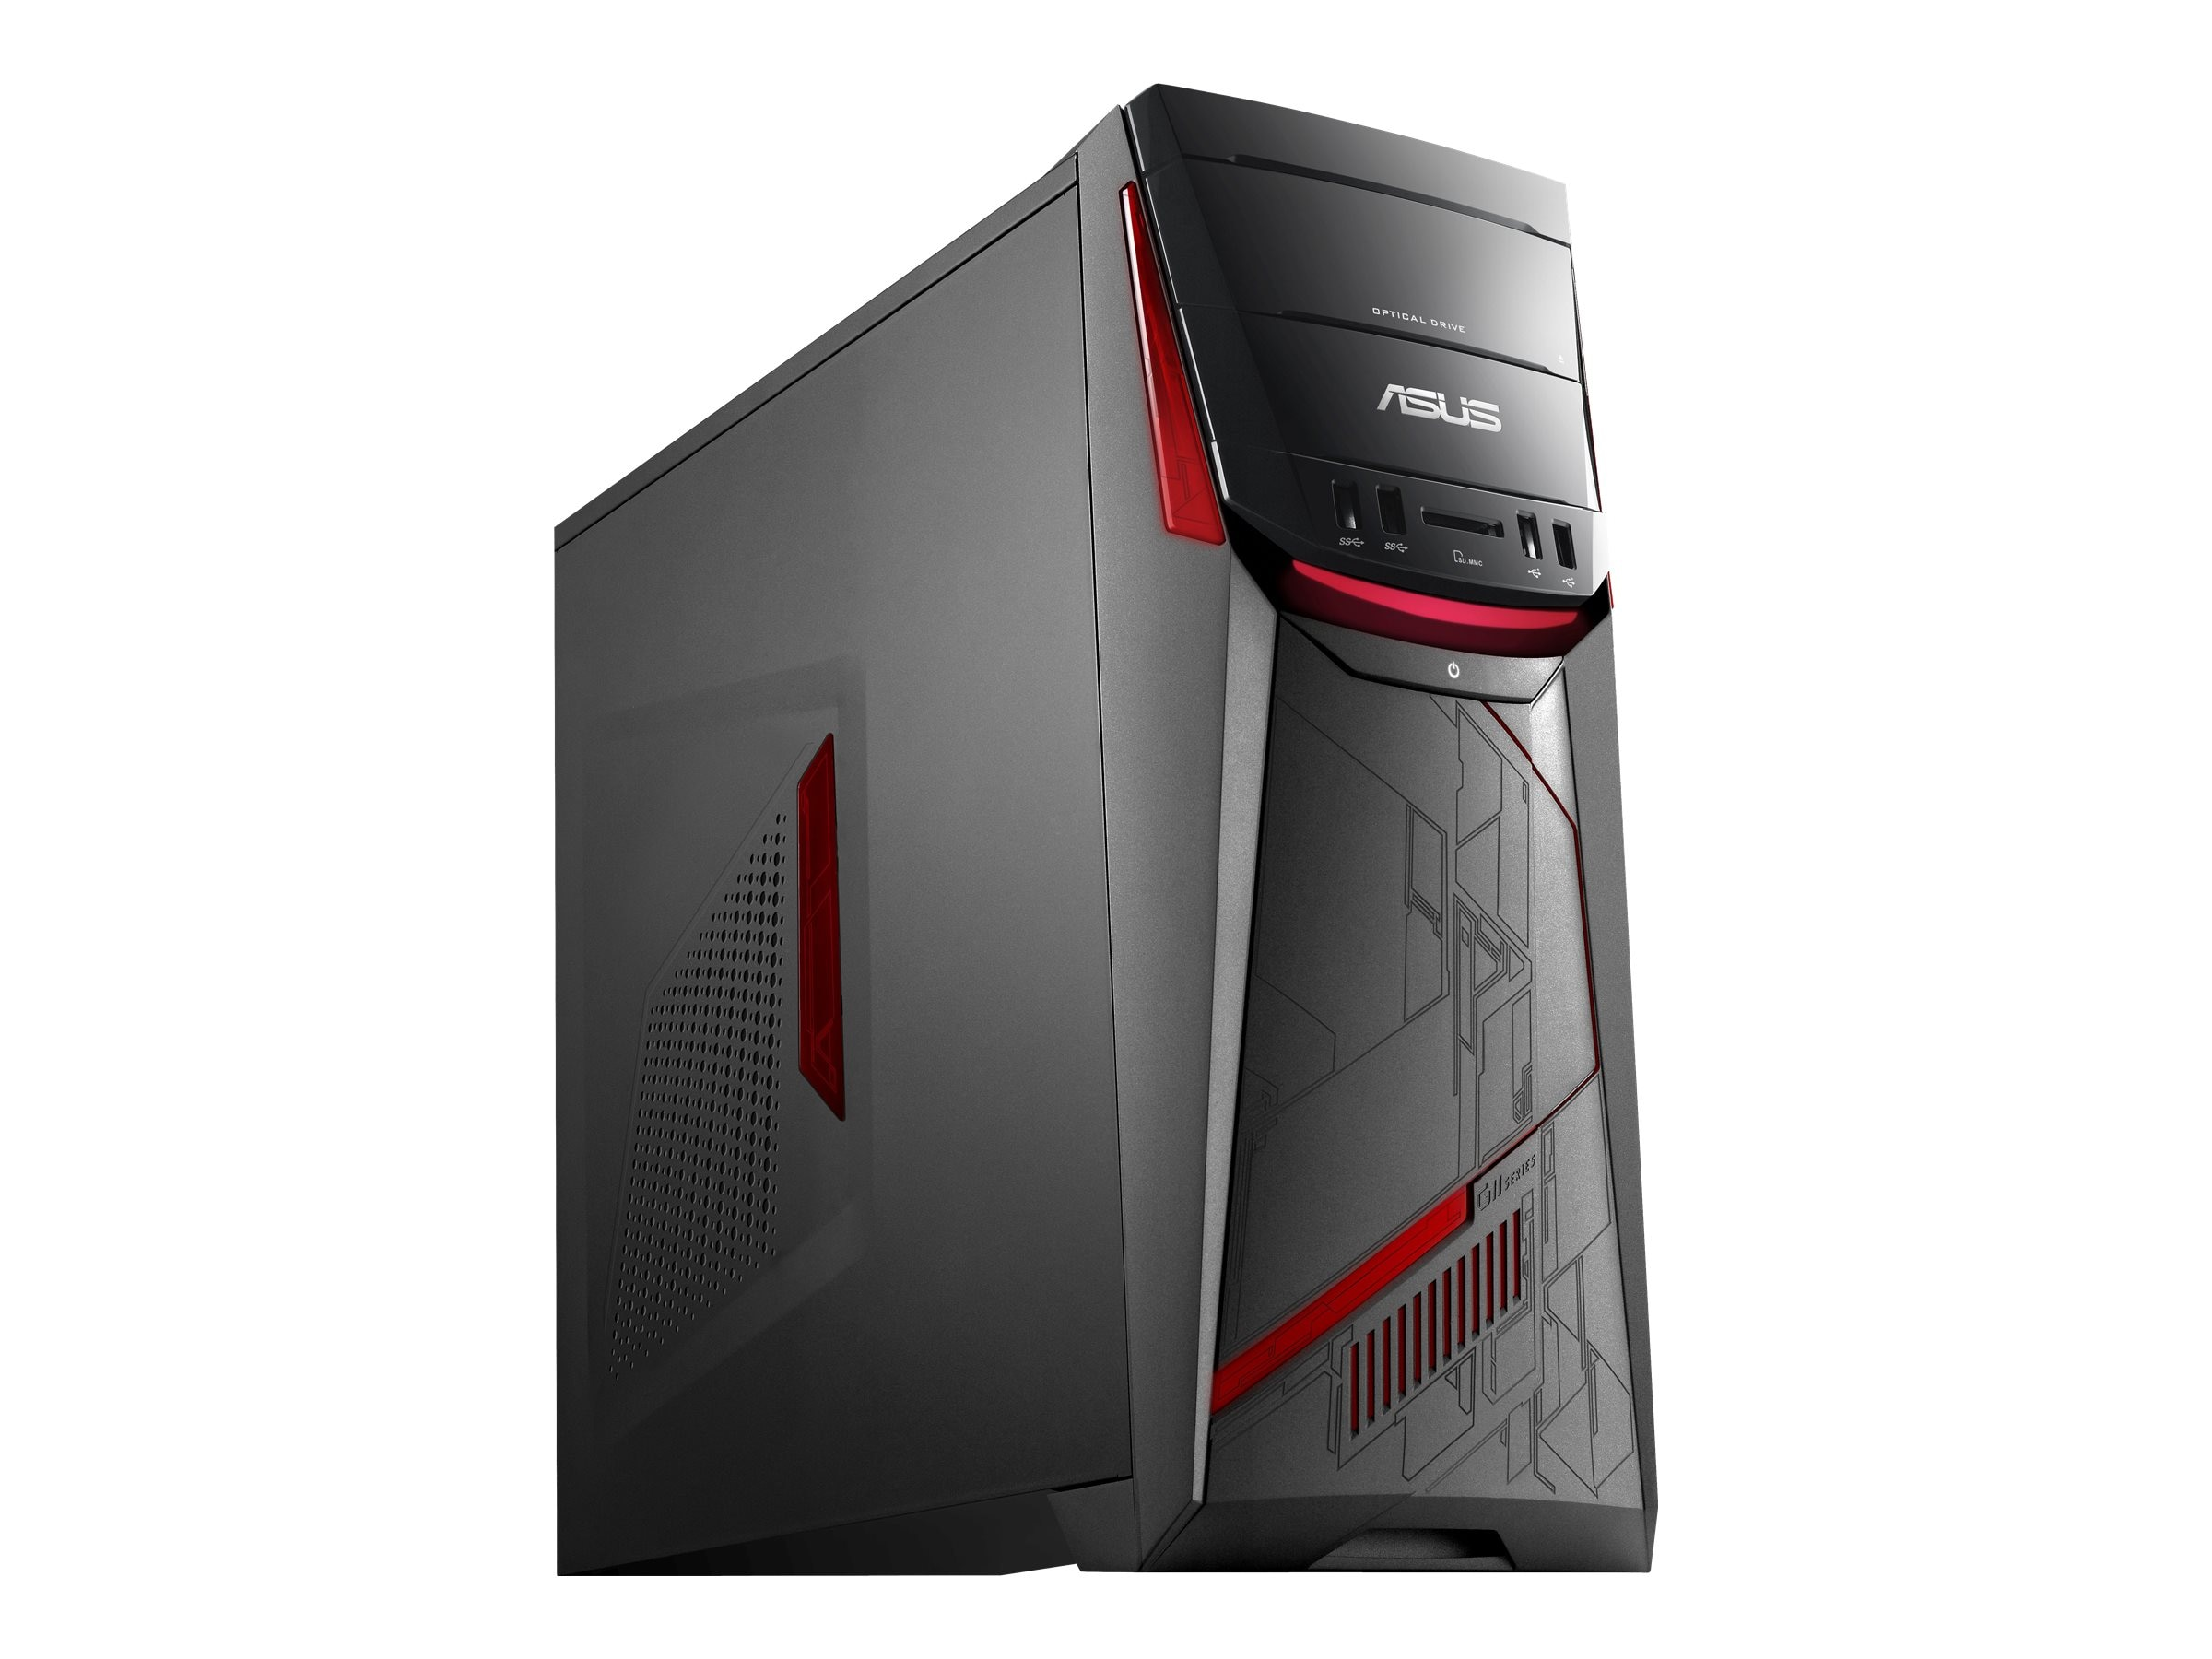 Asus G11CD-WB51 Core i5-6400 8GB 1TB GTX1070 W10, G11CD-WB51-GTX1070